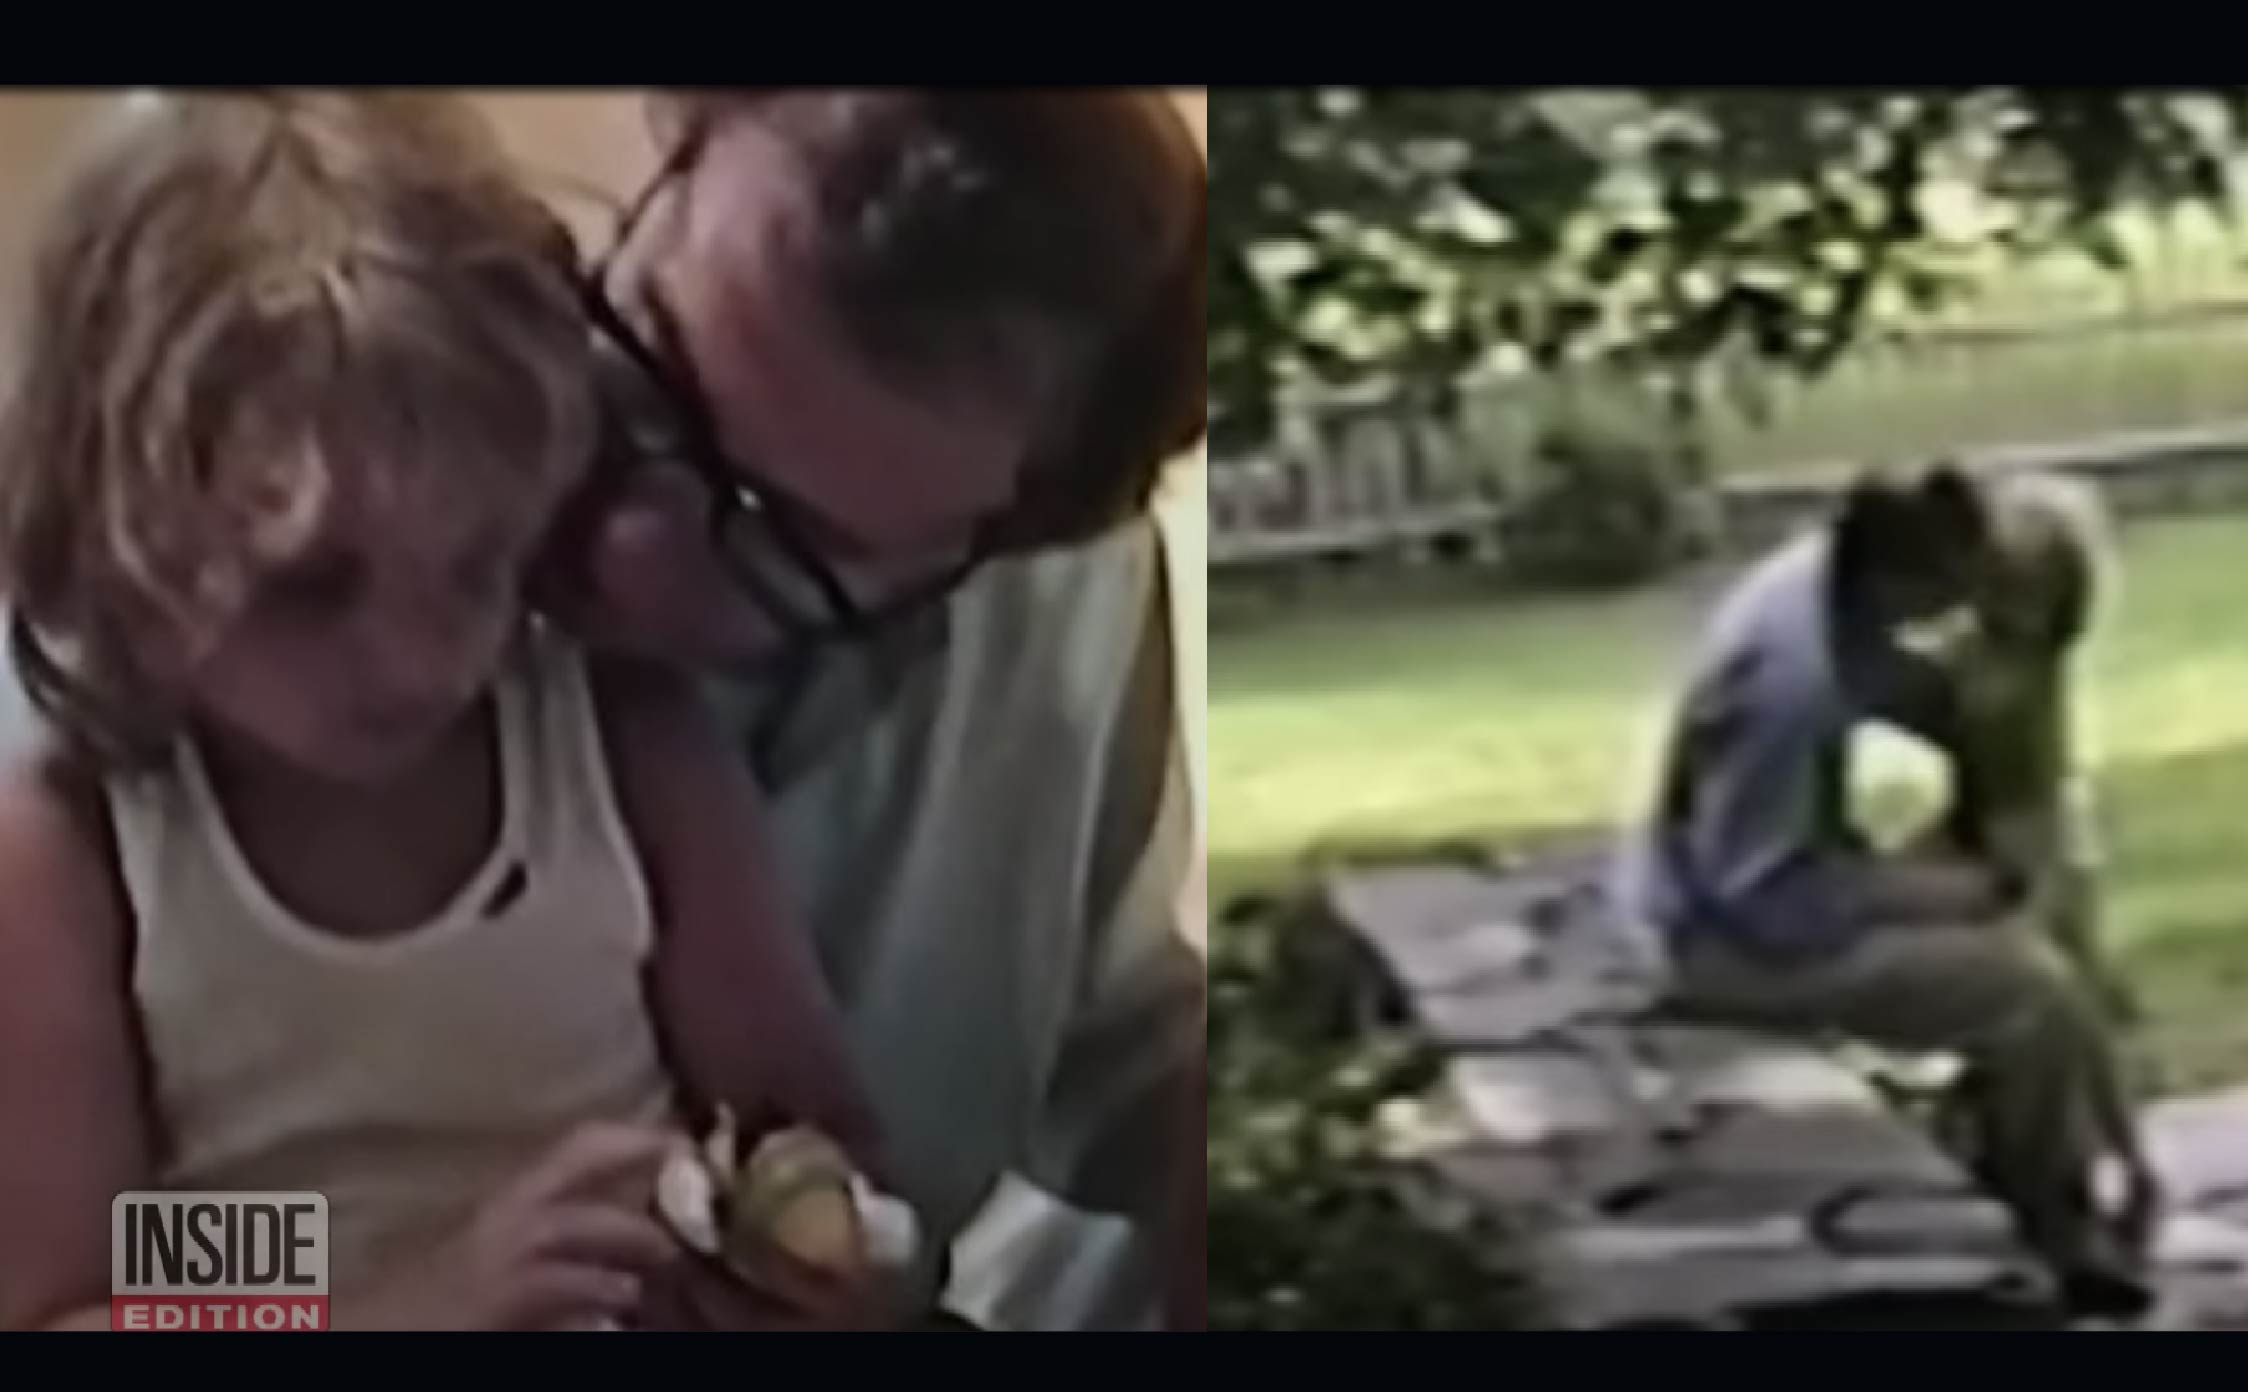 Old Footage Surfaces of Woody Allen's 7-Year-old Daughter Claiming He Sexually Abused Her